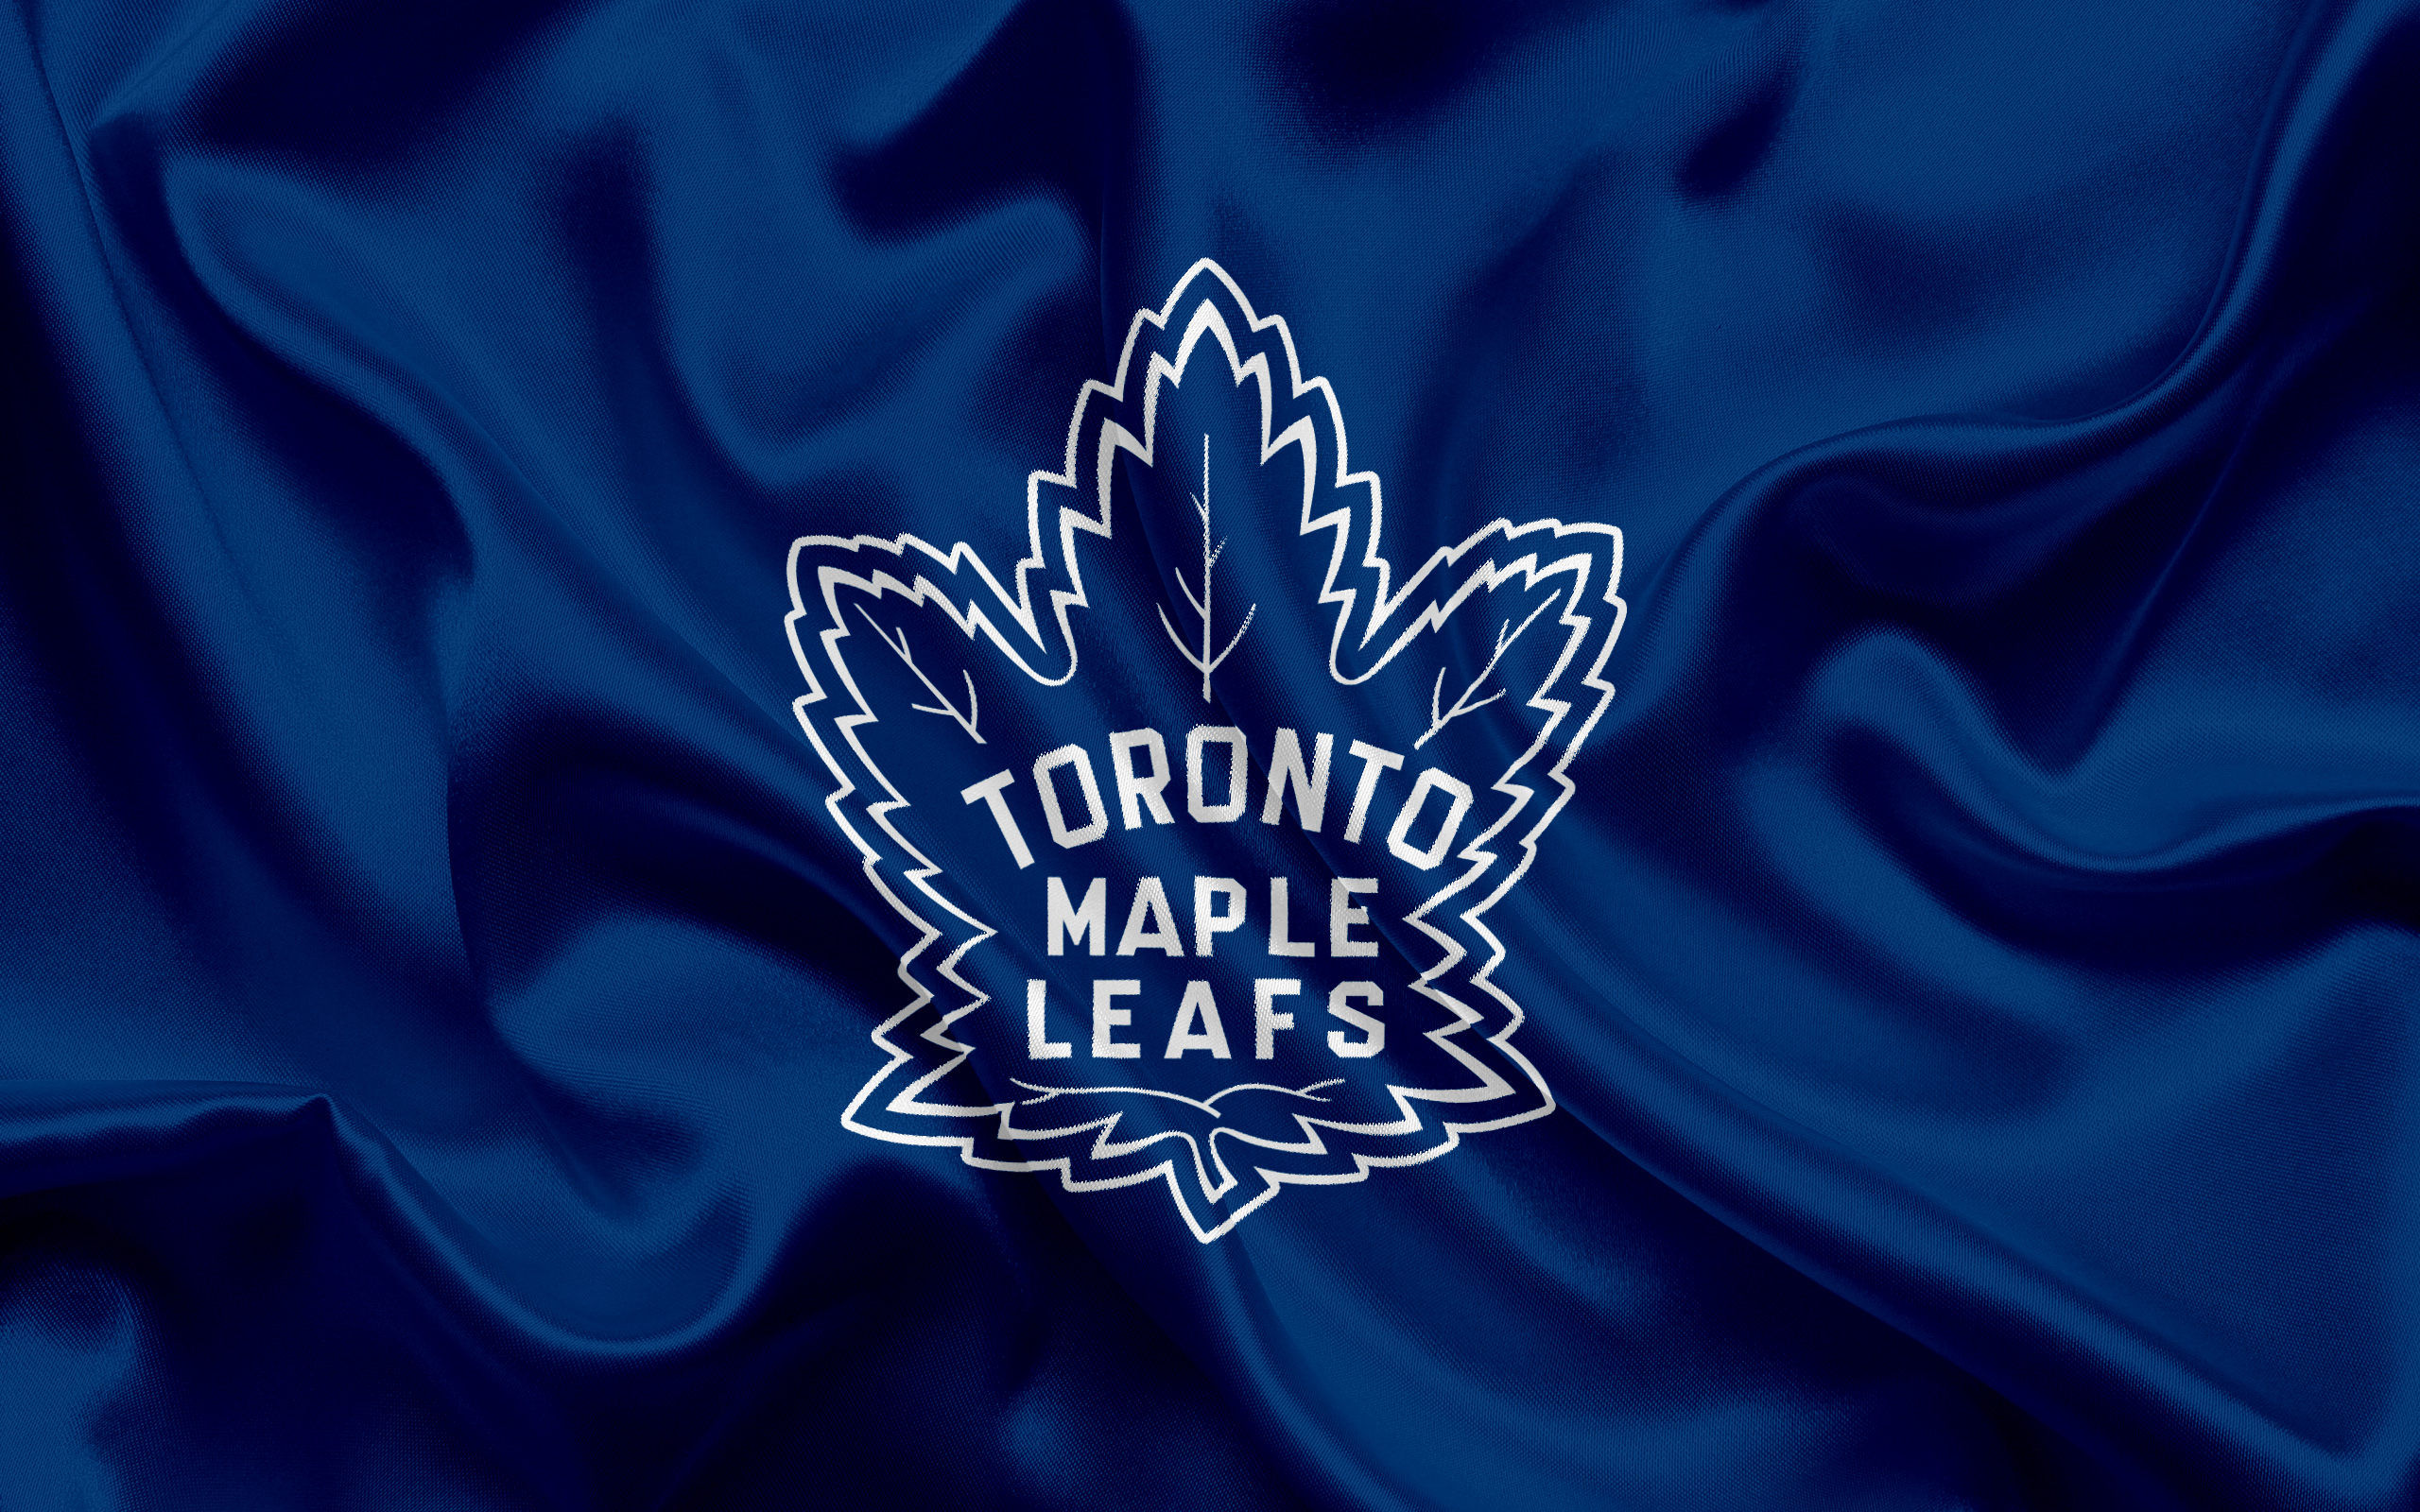 Toronto Maple Leafs Hd Wallpaper Background Image 2560x1600